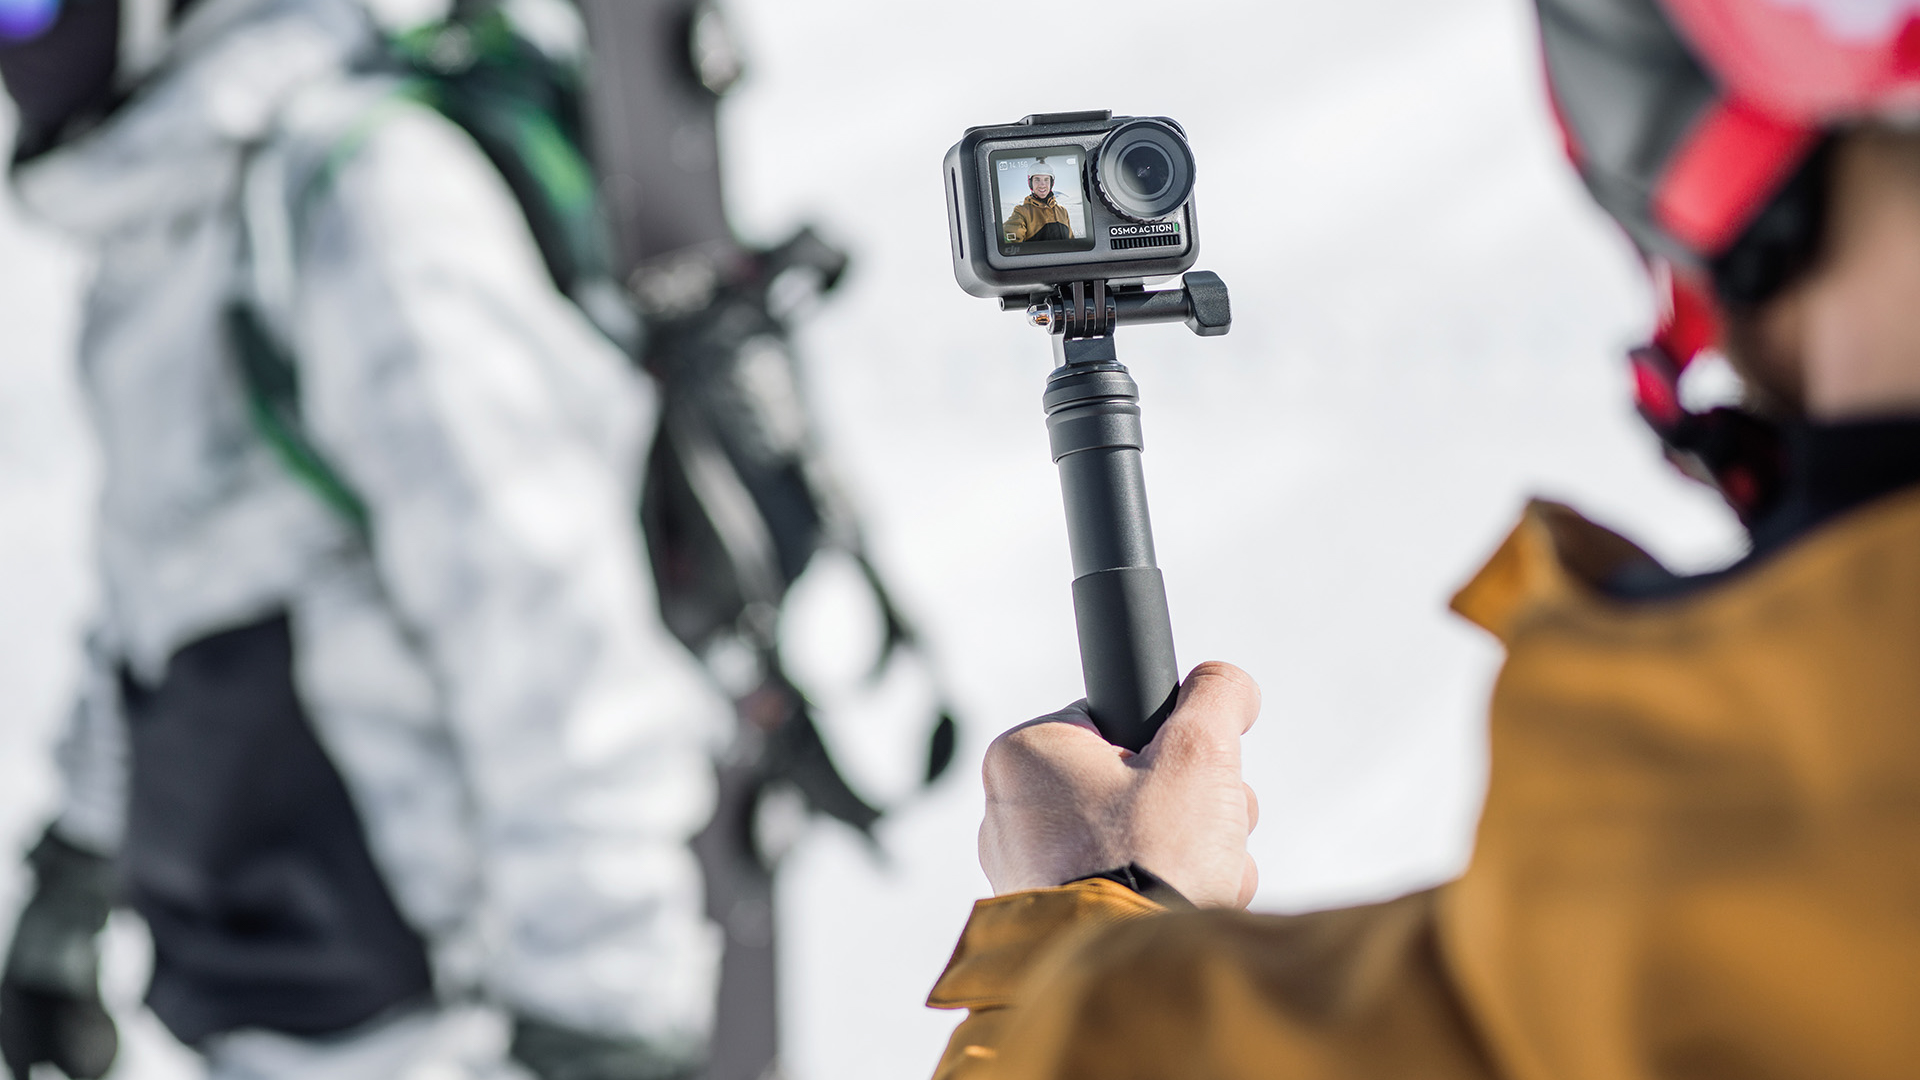 DJI Osmo Action is the company's first 4K rugged action camera